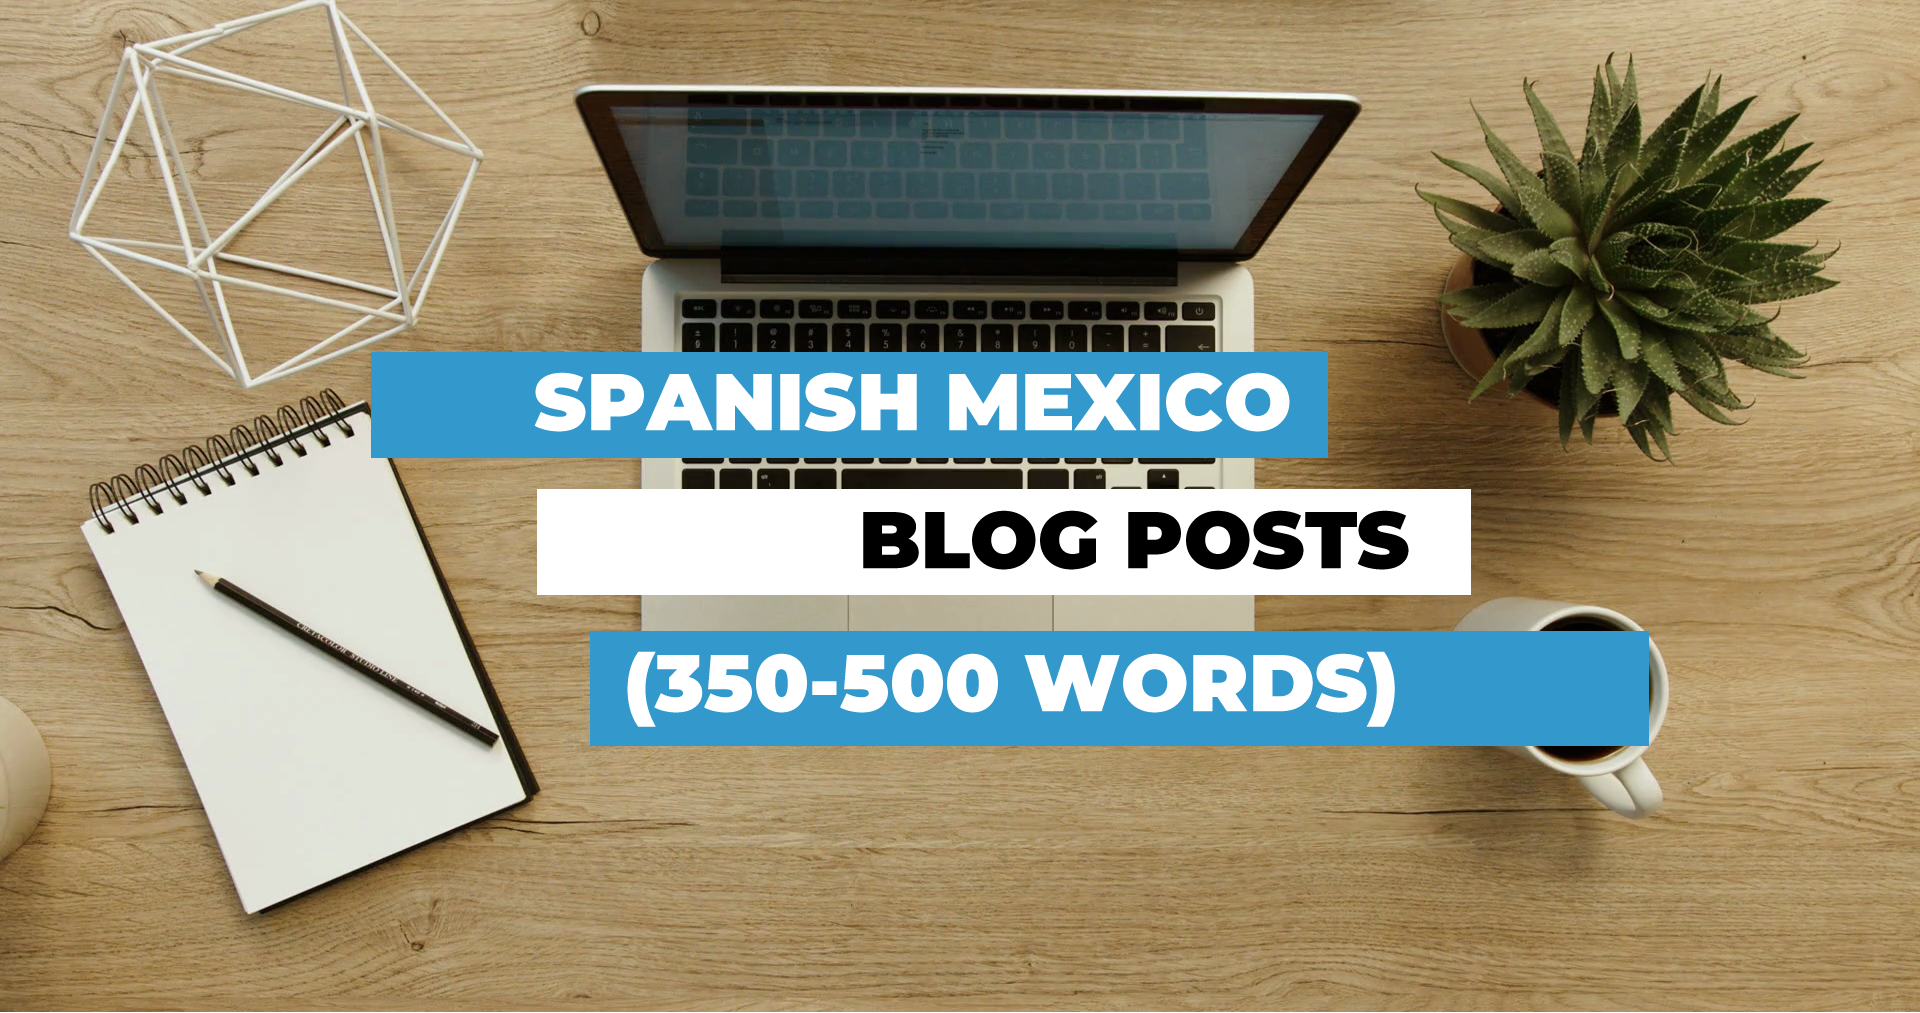 One spanish Mexico blog post 350-500 Words